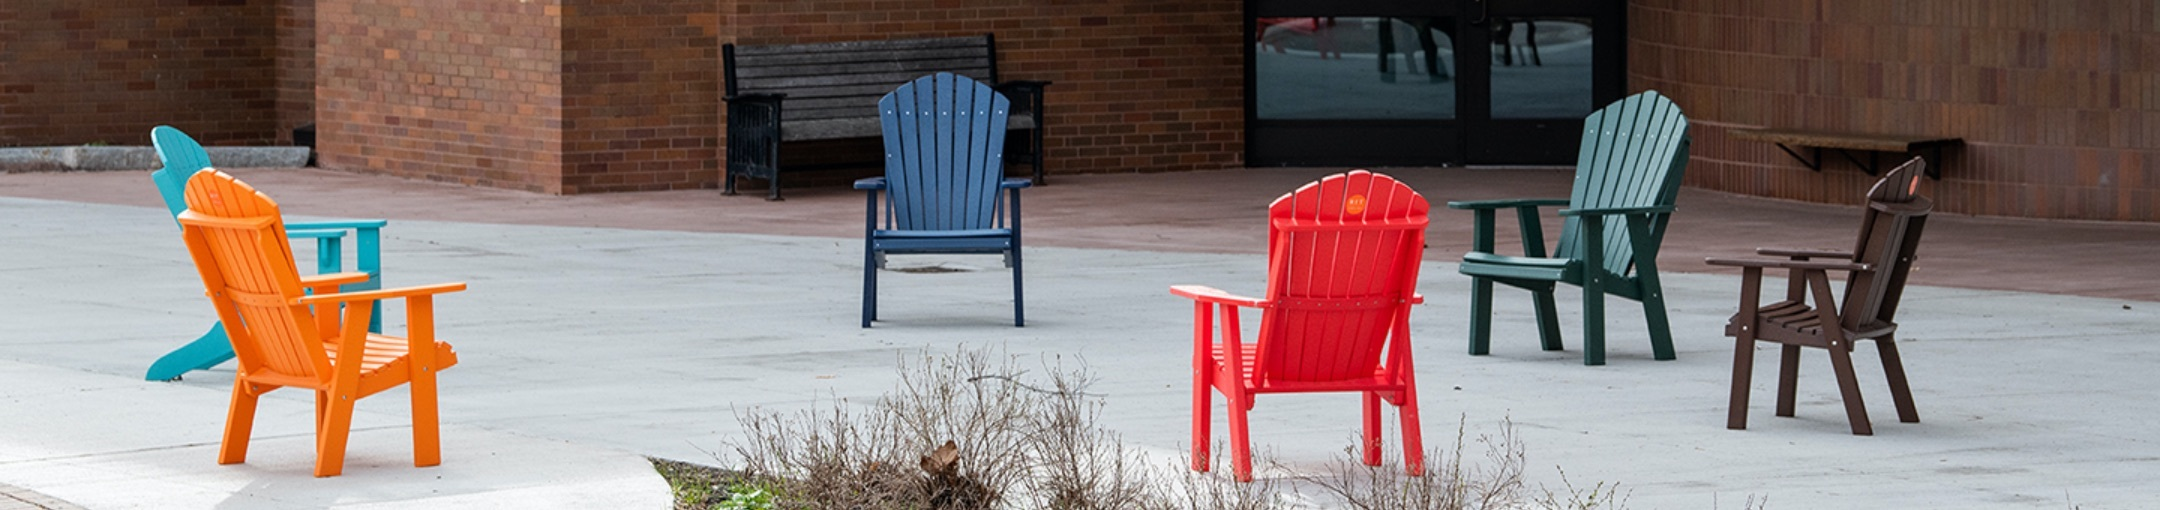 six Adirondack chairs spaced out outdoors.